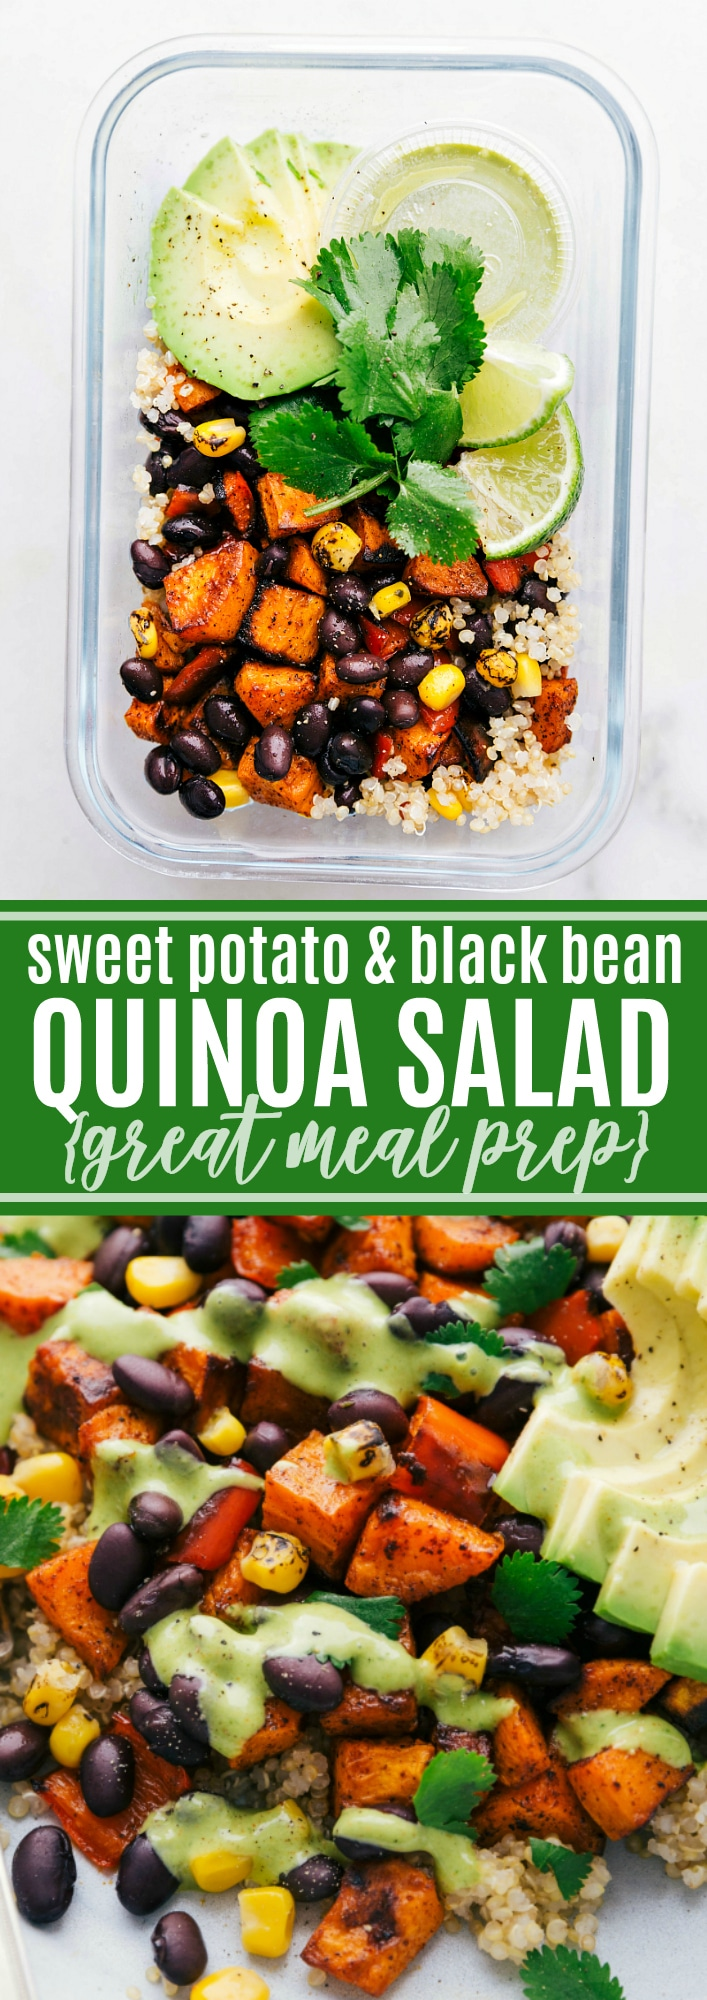 A quinoa black bean salad with roasted sweet potatoes, black beans, corn, red bell pepper, and a delicious cilantro lime dressing. This quinoa black bean salad makes a delicious meal, great weekly meal prep, or side dish via chelseasmessyapron.com #quinoa #black #bean #meal #prep #recipe #easy #quick #kid #friendly #sweet #potato #cilantro #dressing